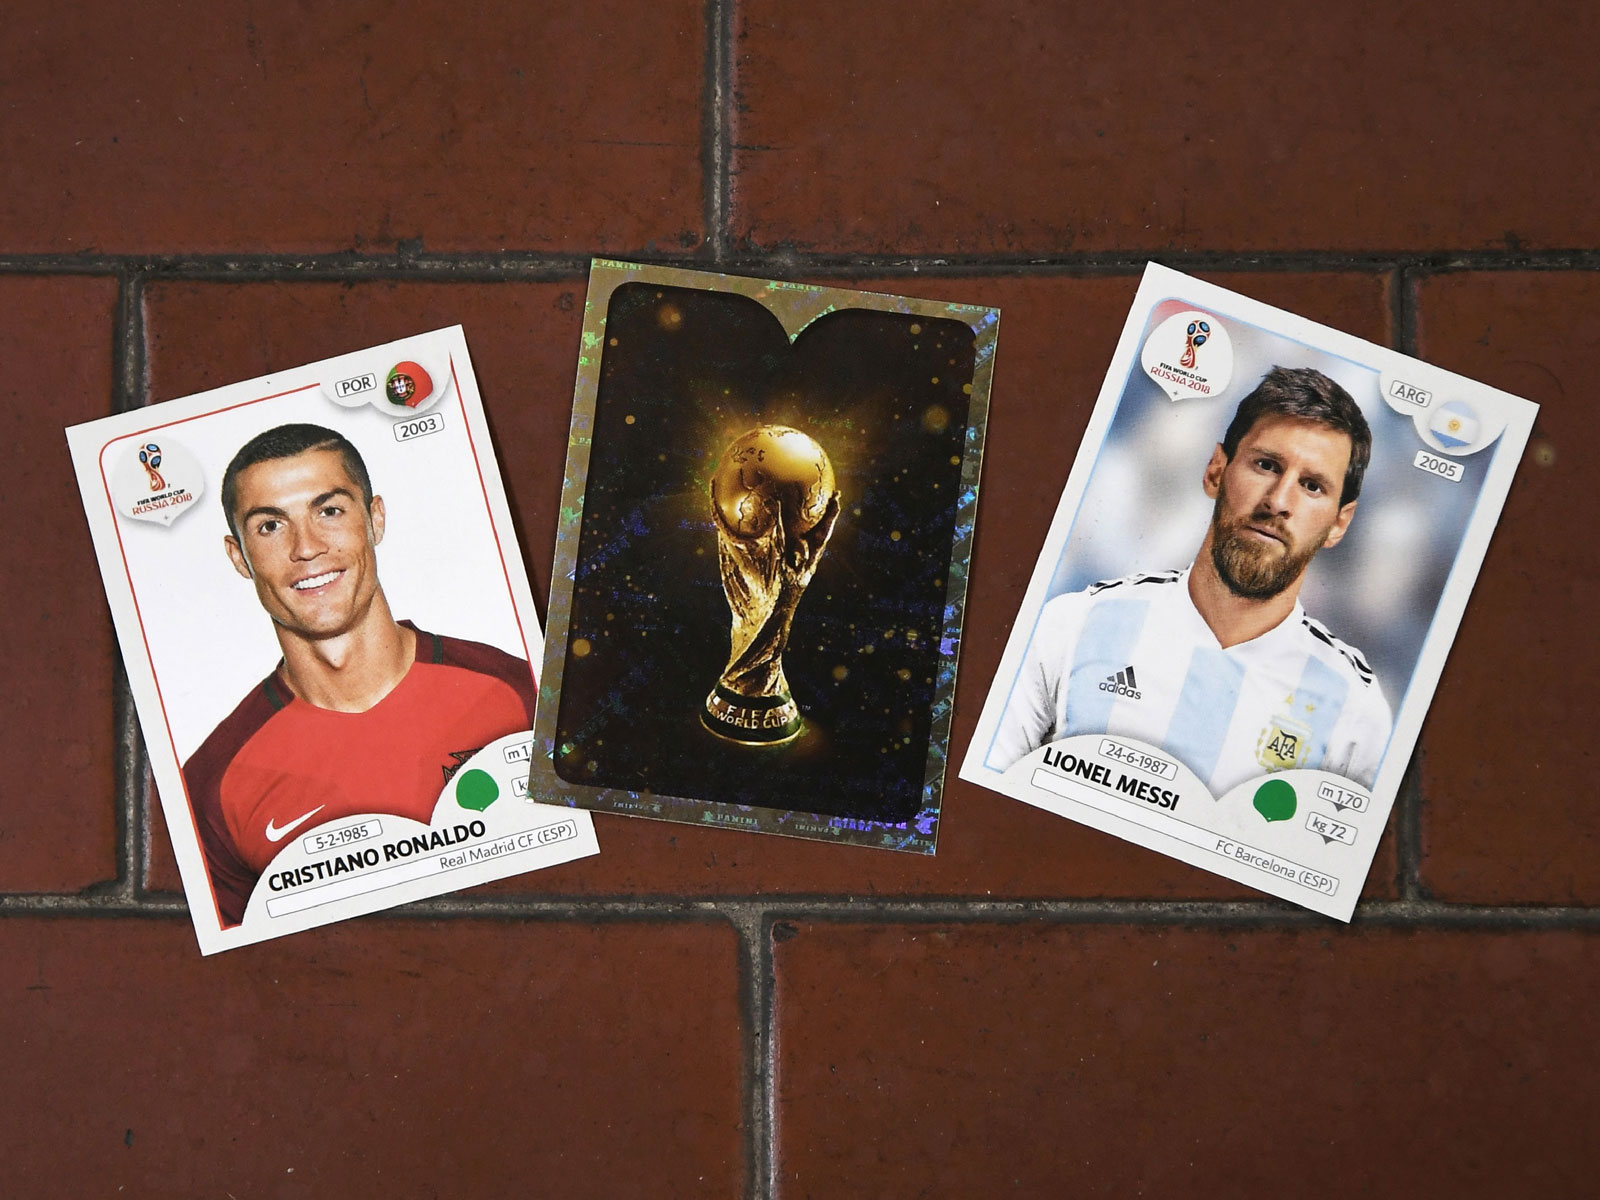 Cristiano Ronaldo and Lionel Messi's 2018 World Cup Panini stickers